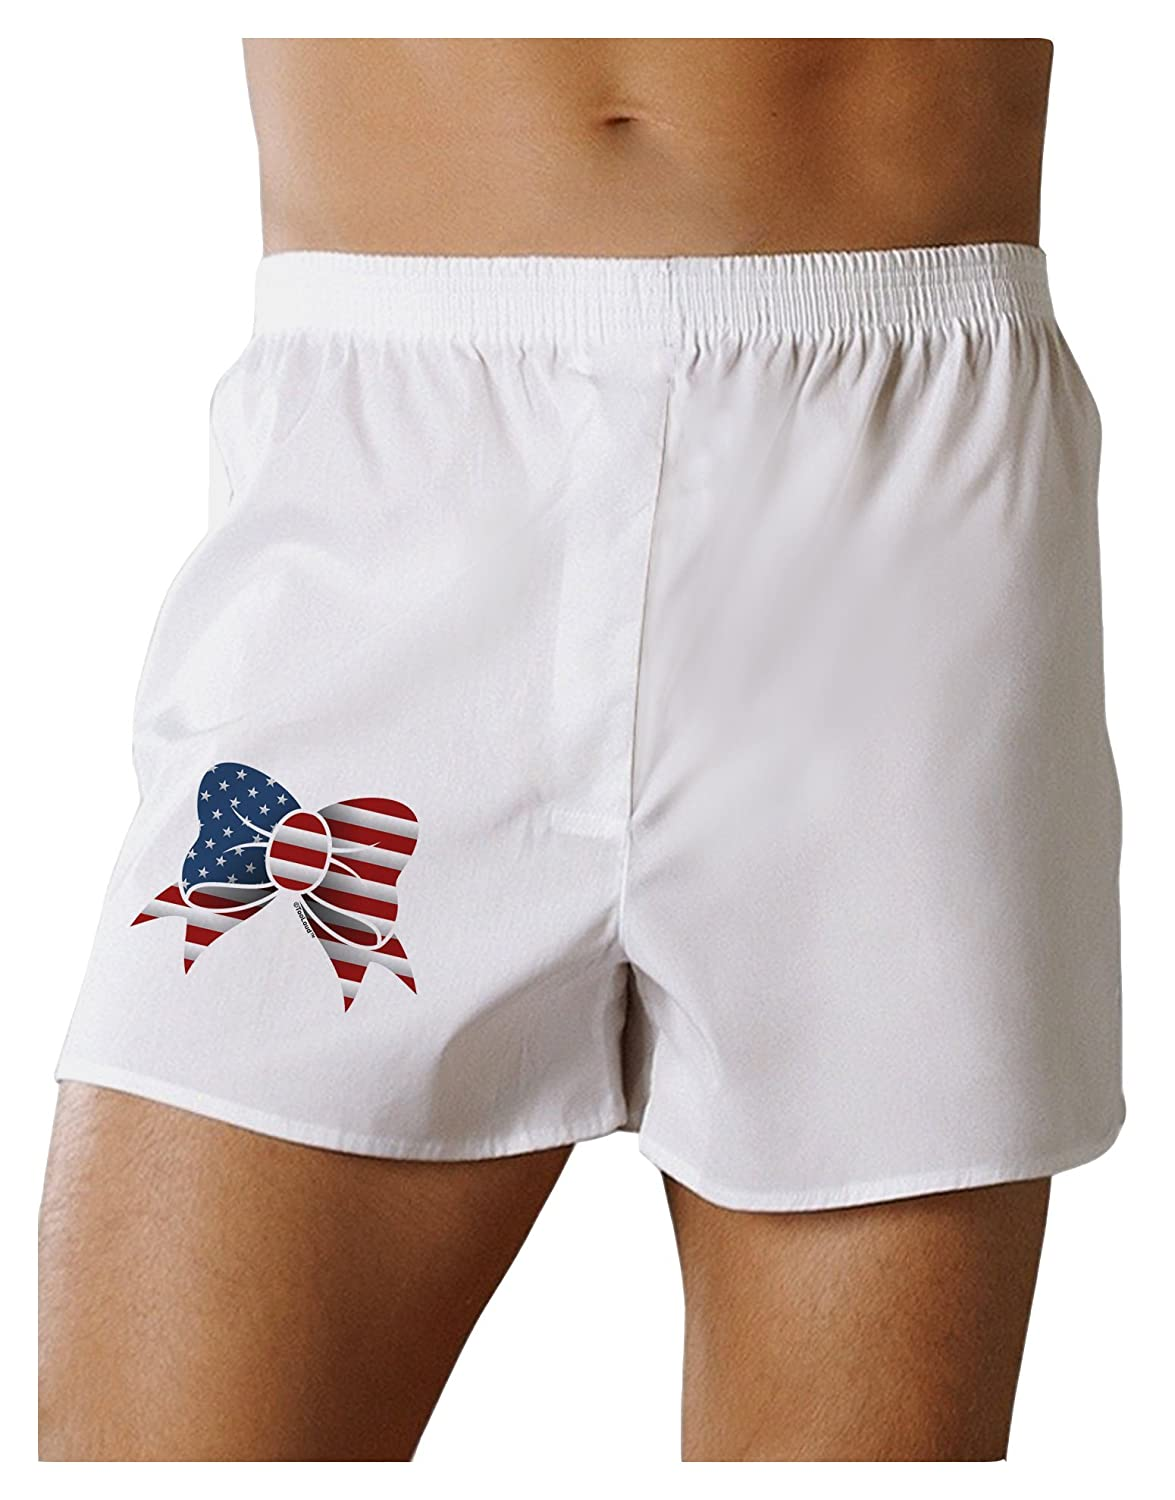 TOOLOUD Patriotic Bow Boxers Shorts